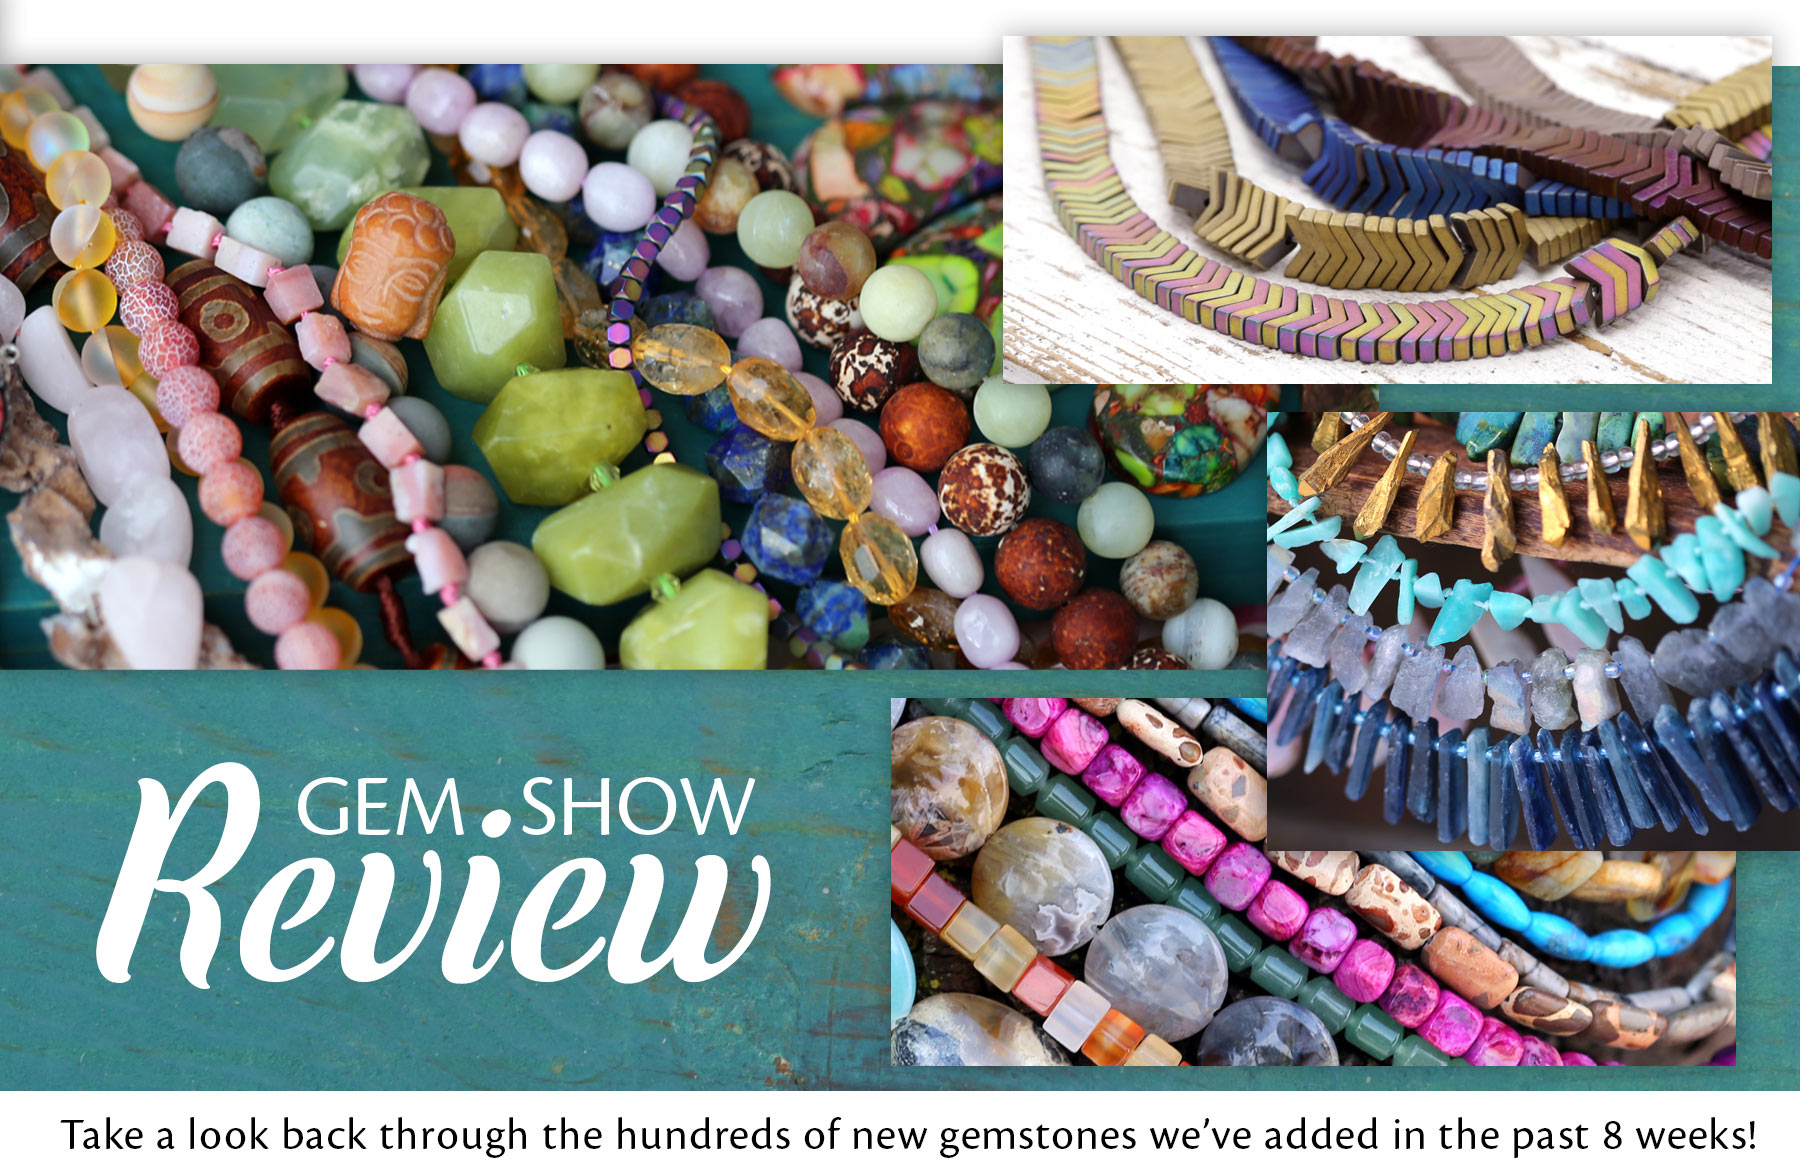 Gem Show Review